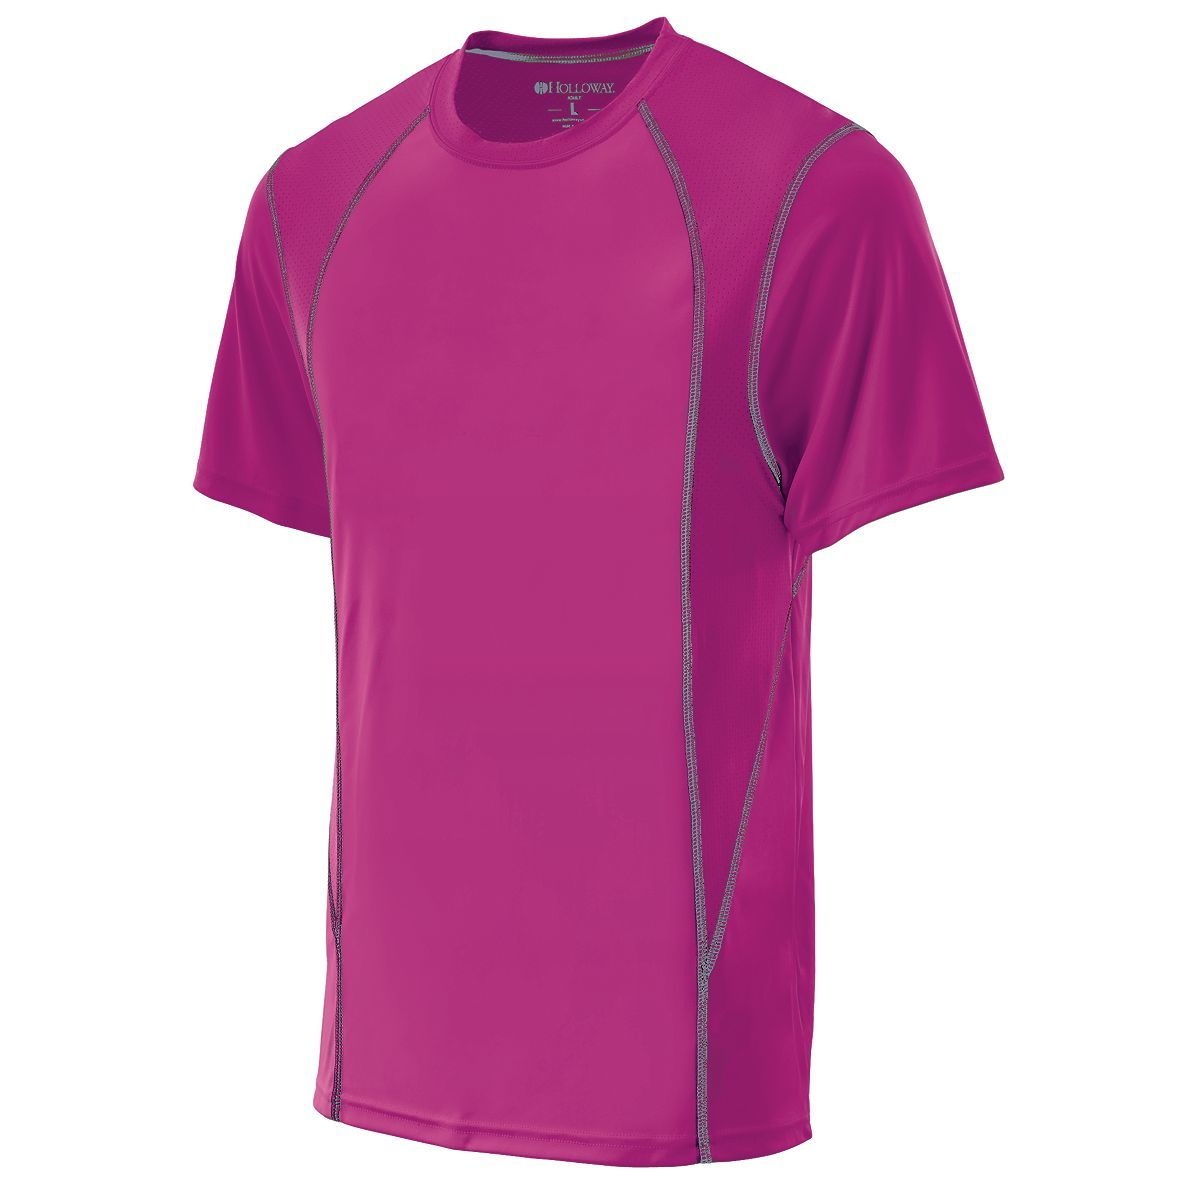 Youth Devote Shirt - POWER PINK/GRAPHITE